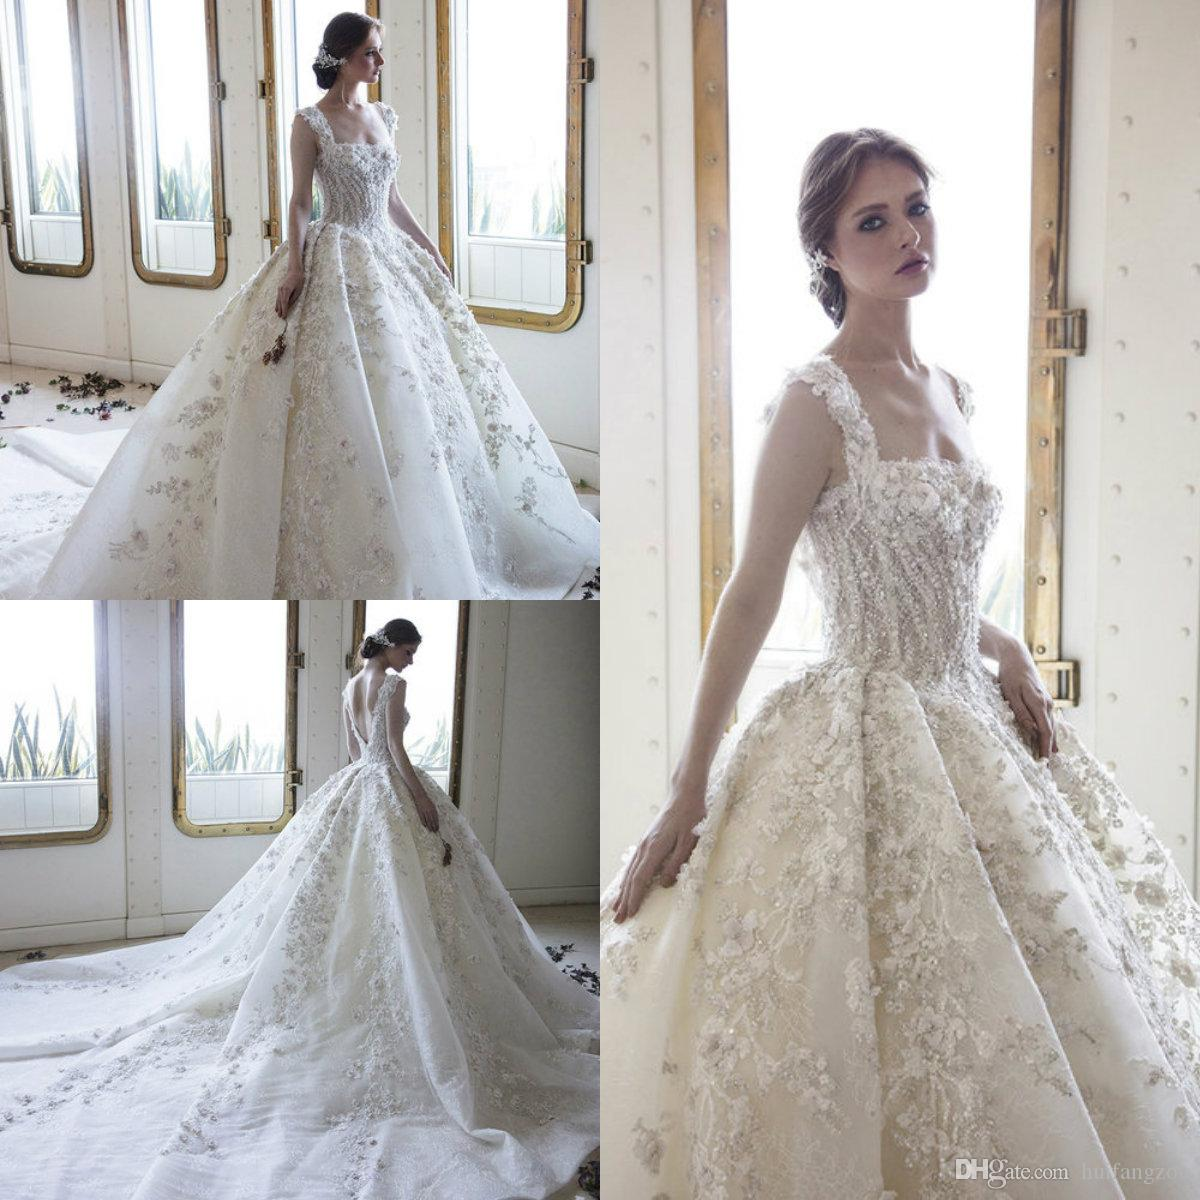 c66041e17e Discount Ziad Nakad Vintage Wedding Dresses 2019 Luxury 3D Floral Appliques Ball  Gown Backless Wedding Dress With Beads Custom Made Sexy Bridal Gowns Latest  ...